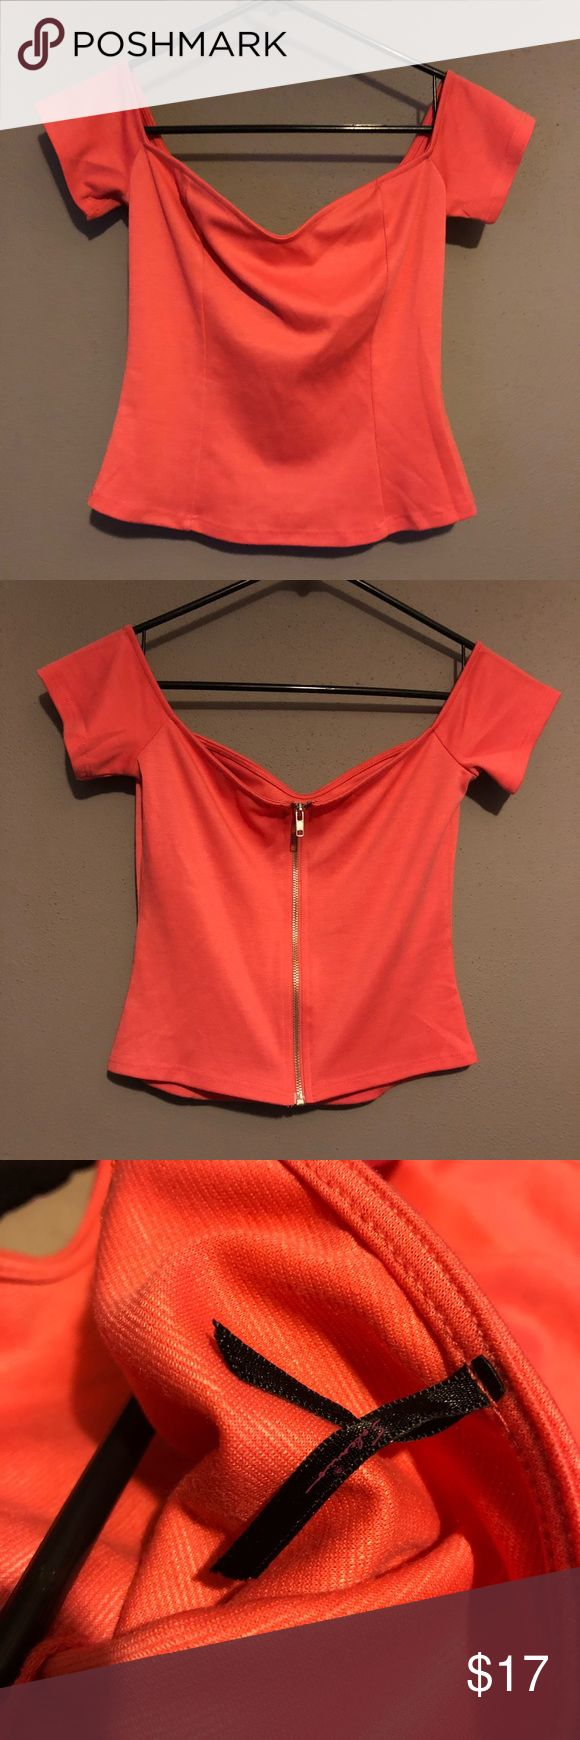 Woman's lulu coral top size medium Woman's lulu coral crop top size medium, purchased online and never worn, new without tags, really cute , sits off shoulders, please reference pictures, feel free to ask questions Lulu's Tops Crop Tops